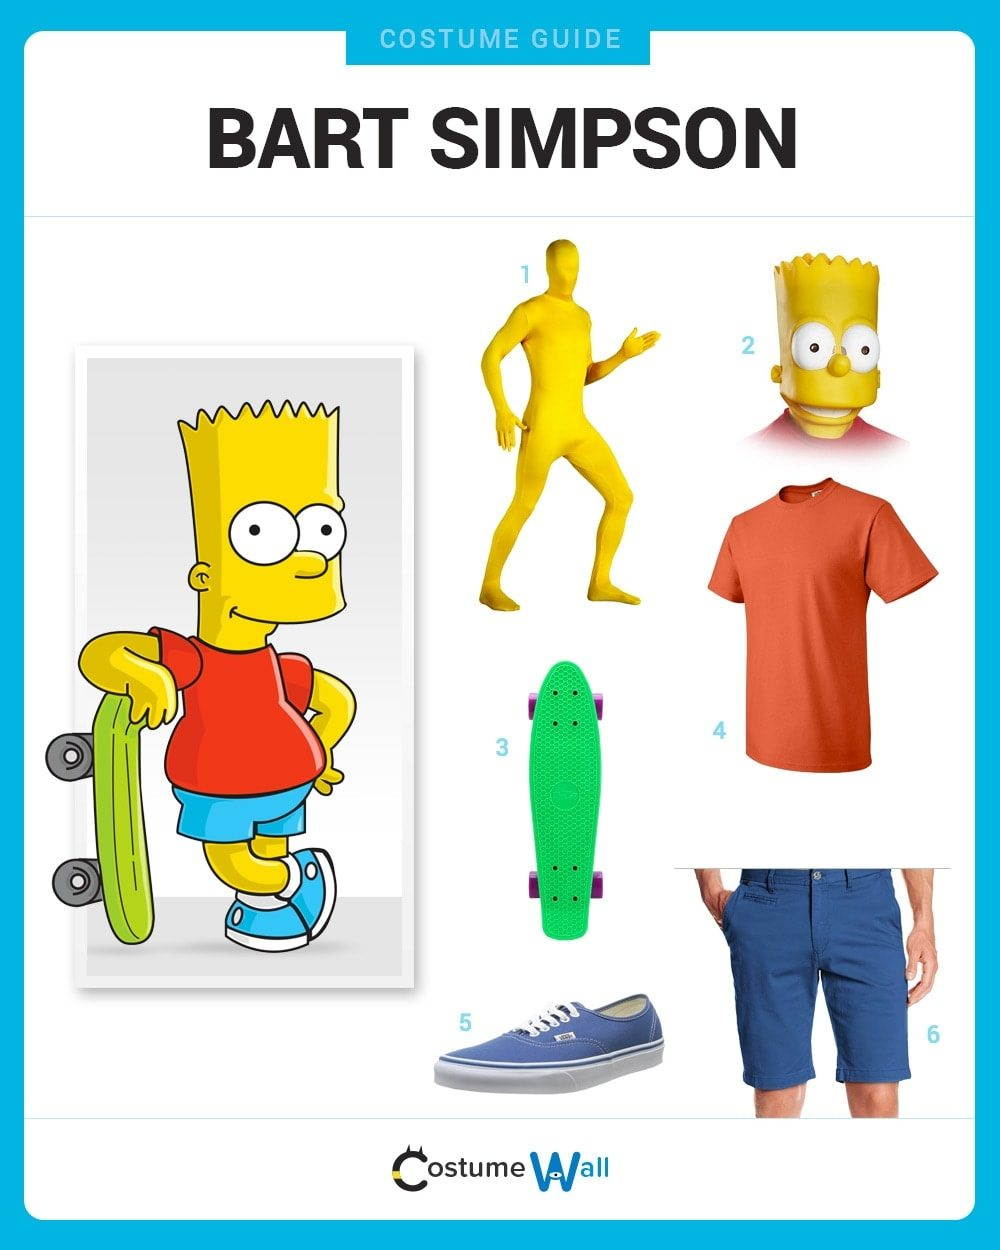 Bart Simpson Costume Guide